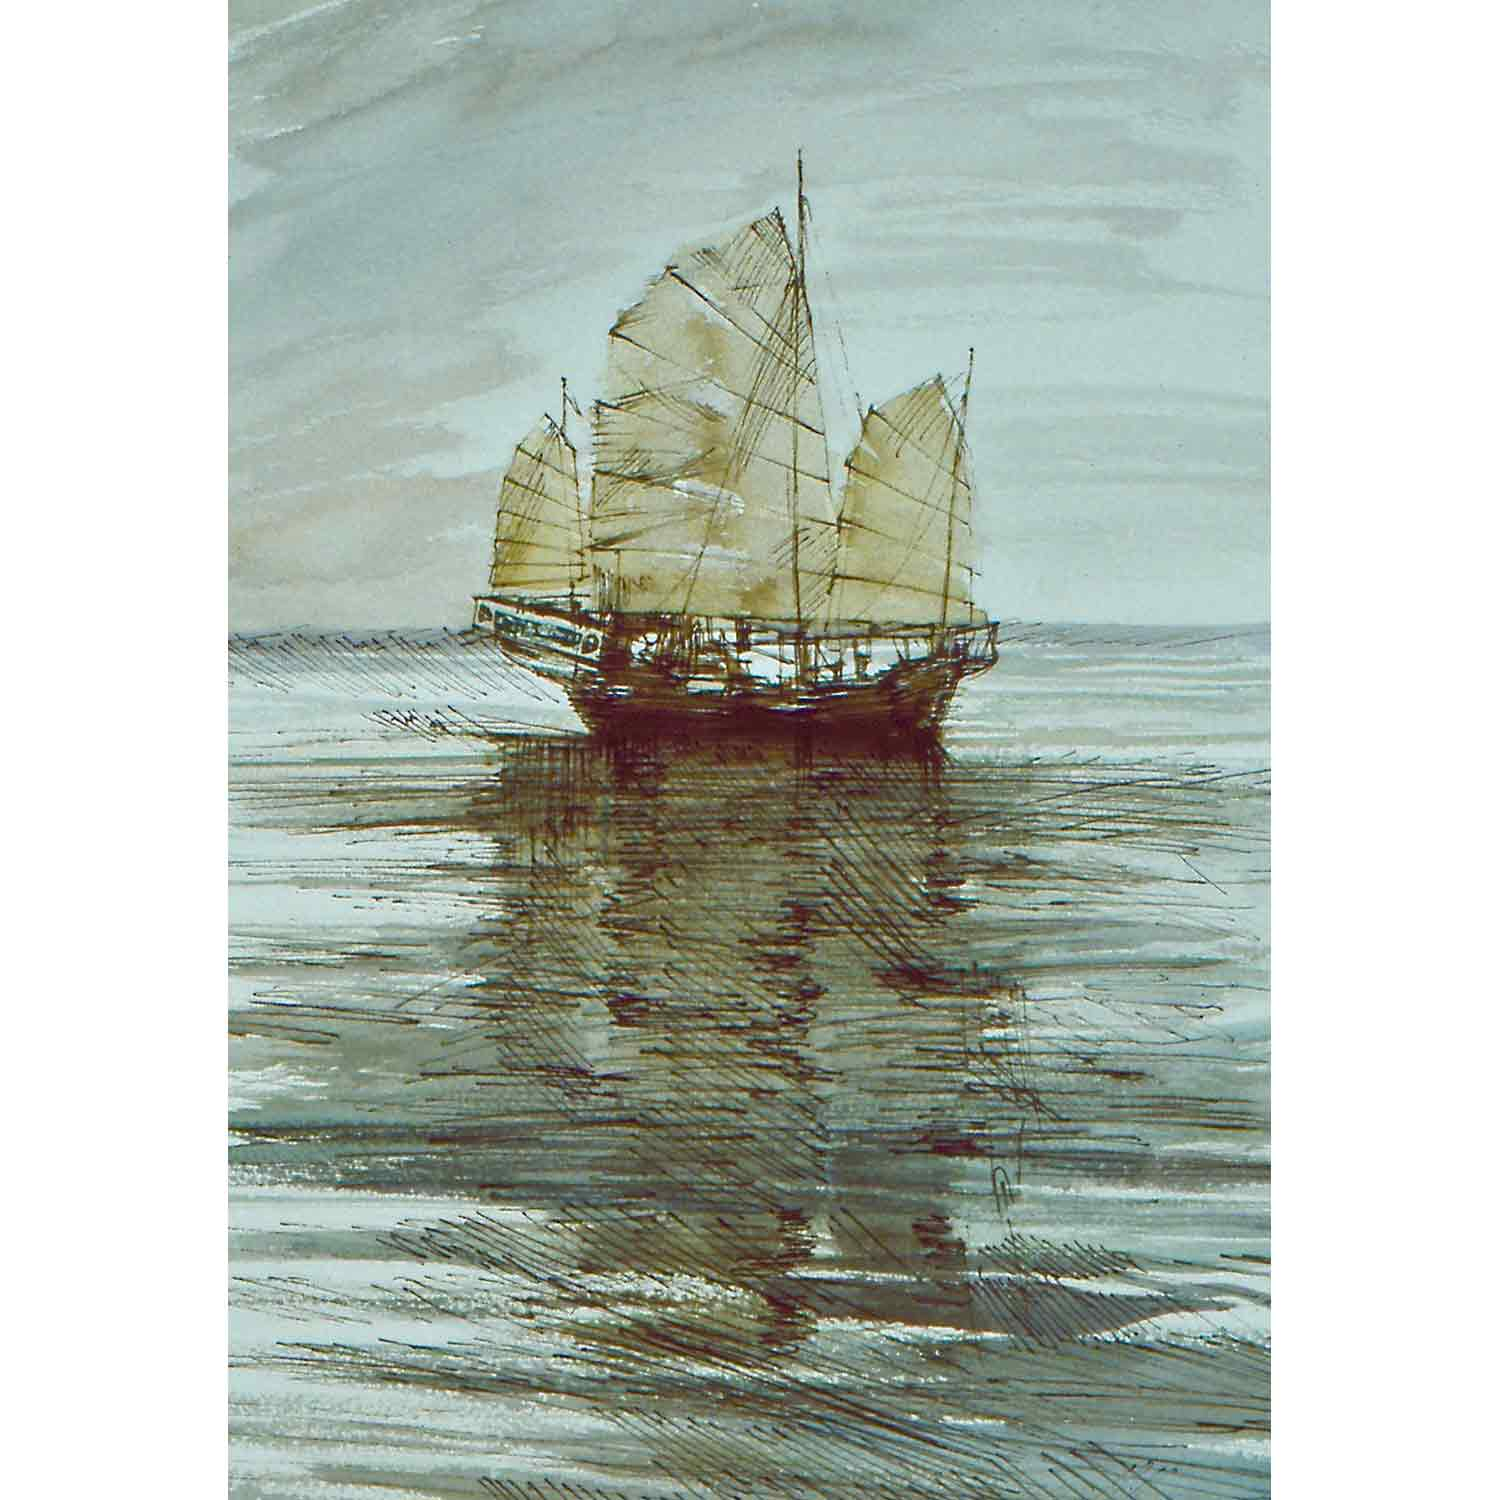 Chinese Junk - pen and watercolour